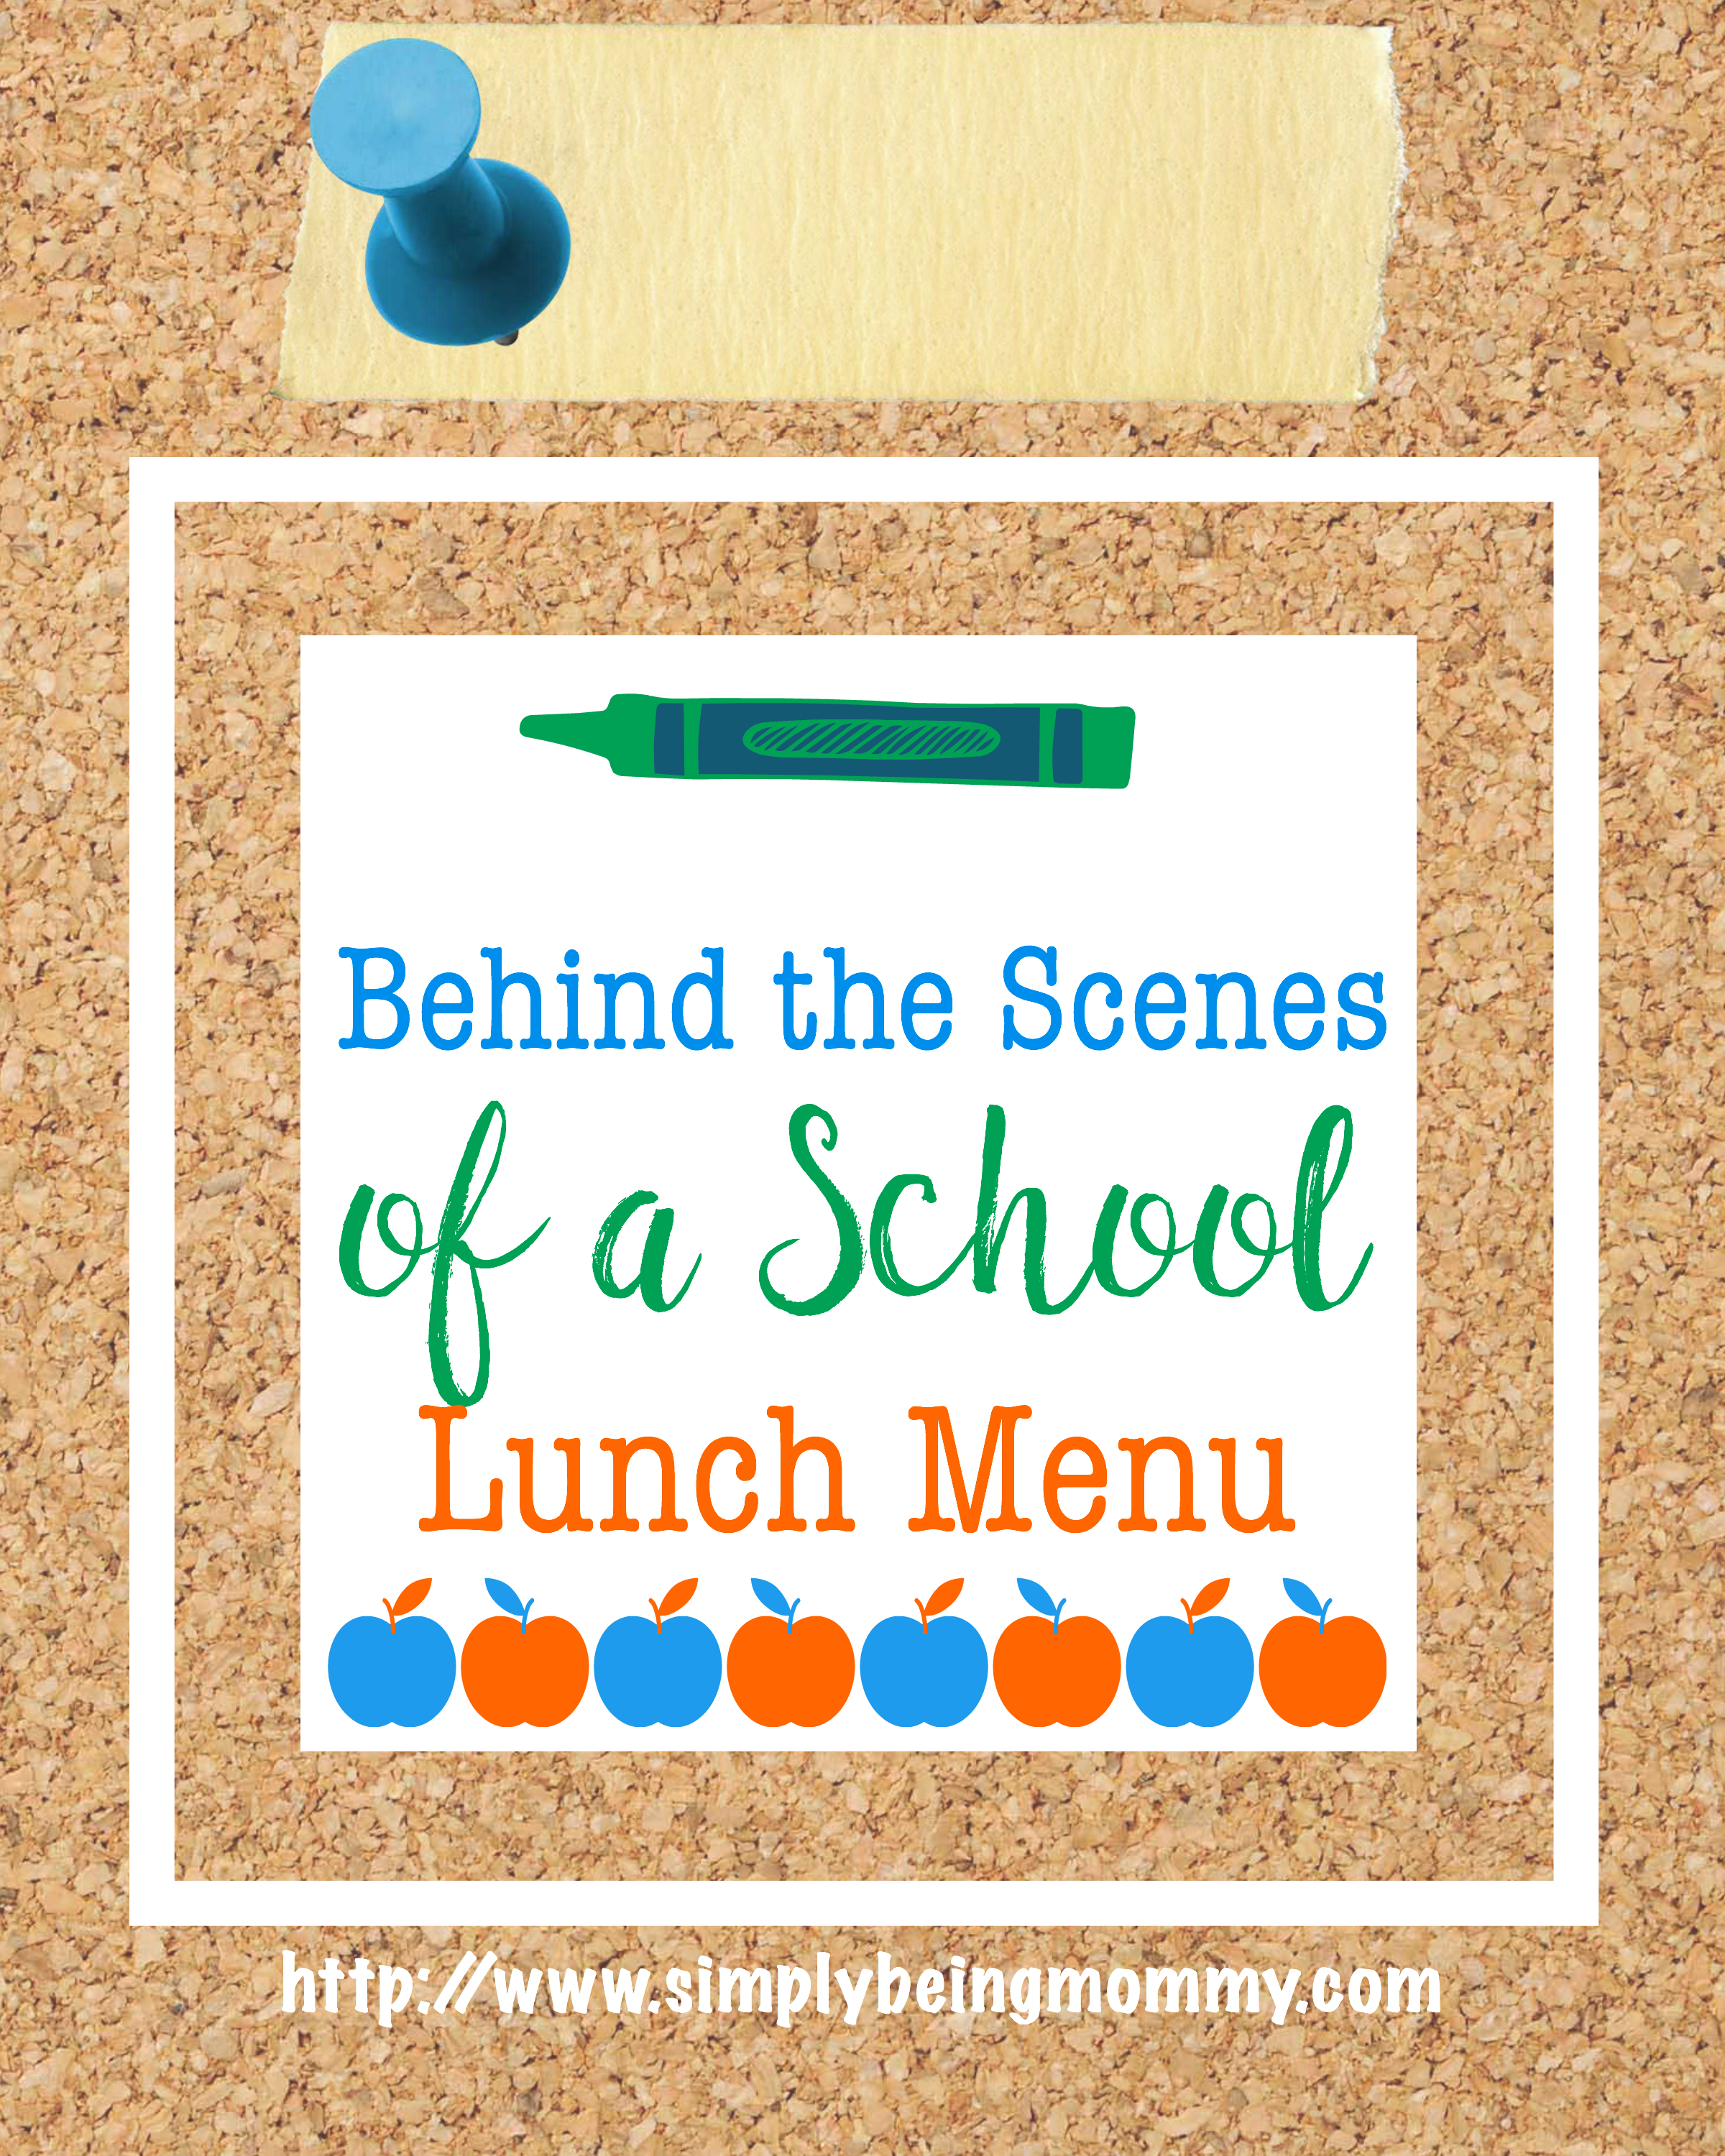 I think you may be surprised at the behind the scenes of a school lunch menu. I know I was.